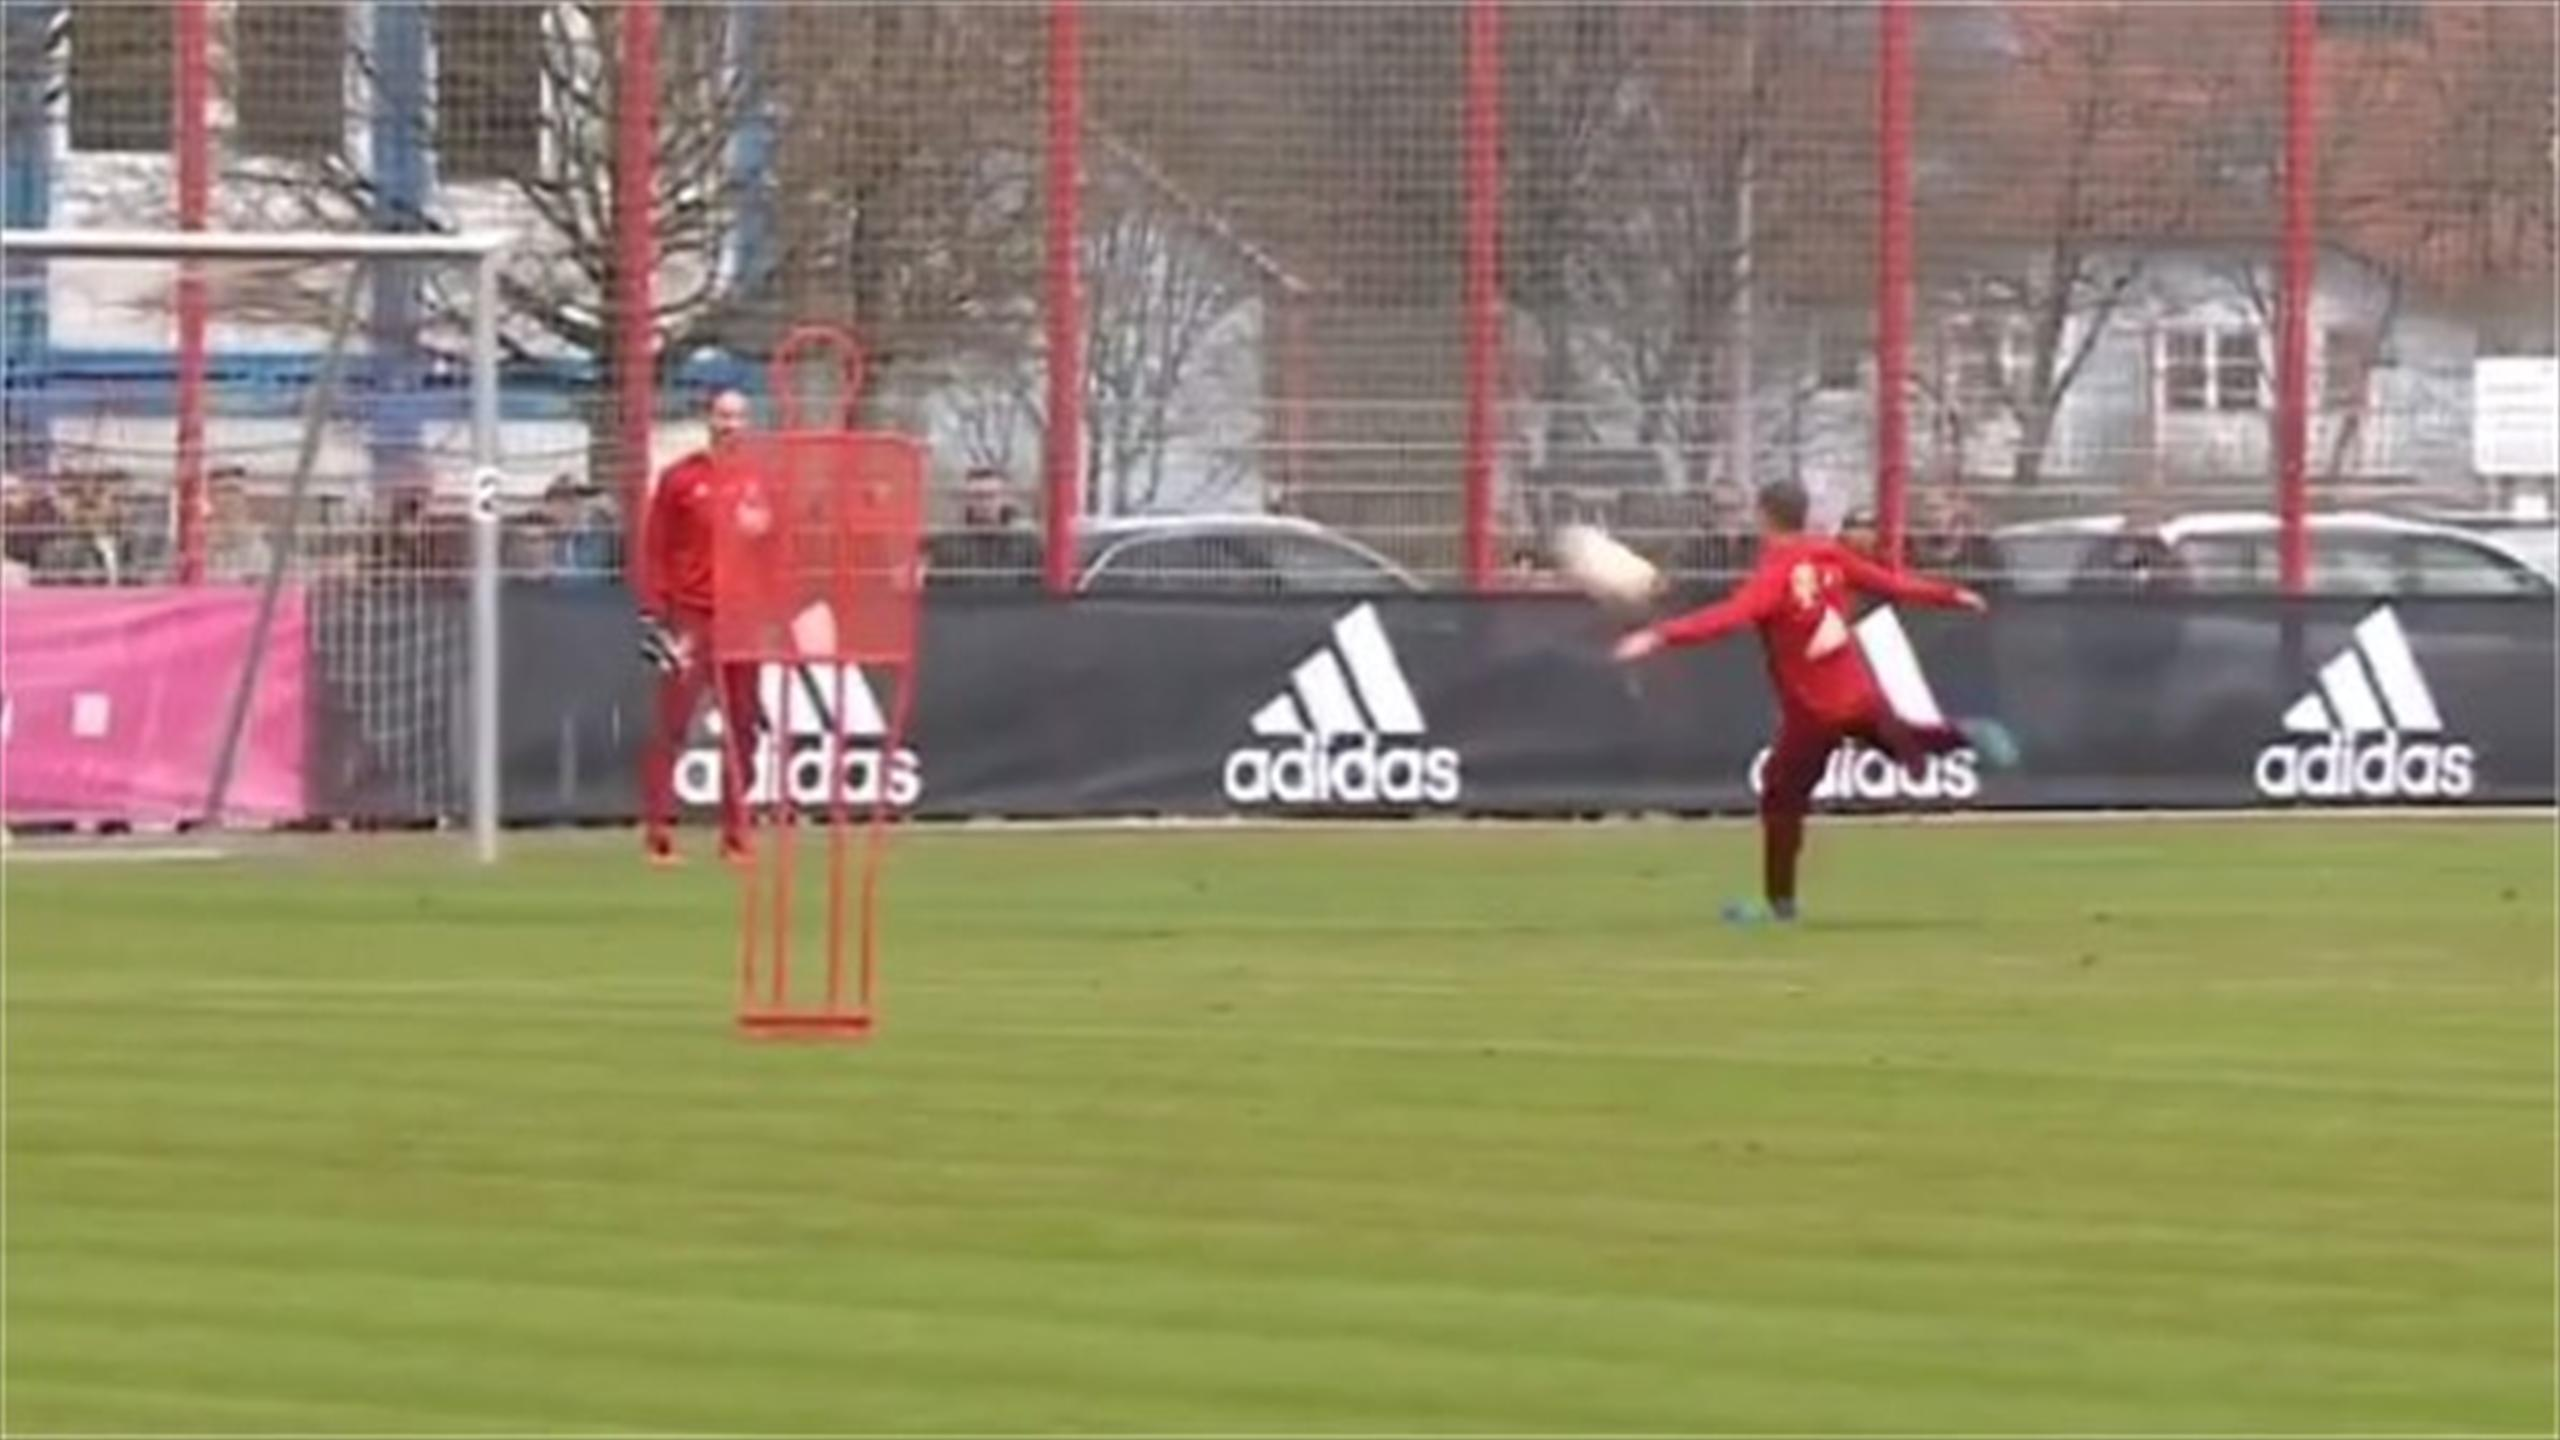 Watch Philipp Lahm's stunning volley into the top corner in Bayern Munich training (Instagram)